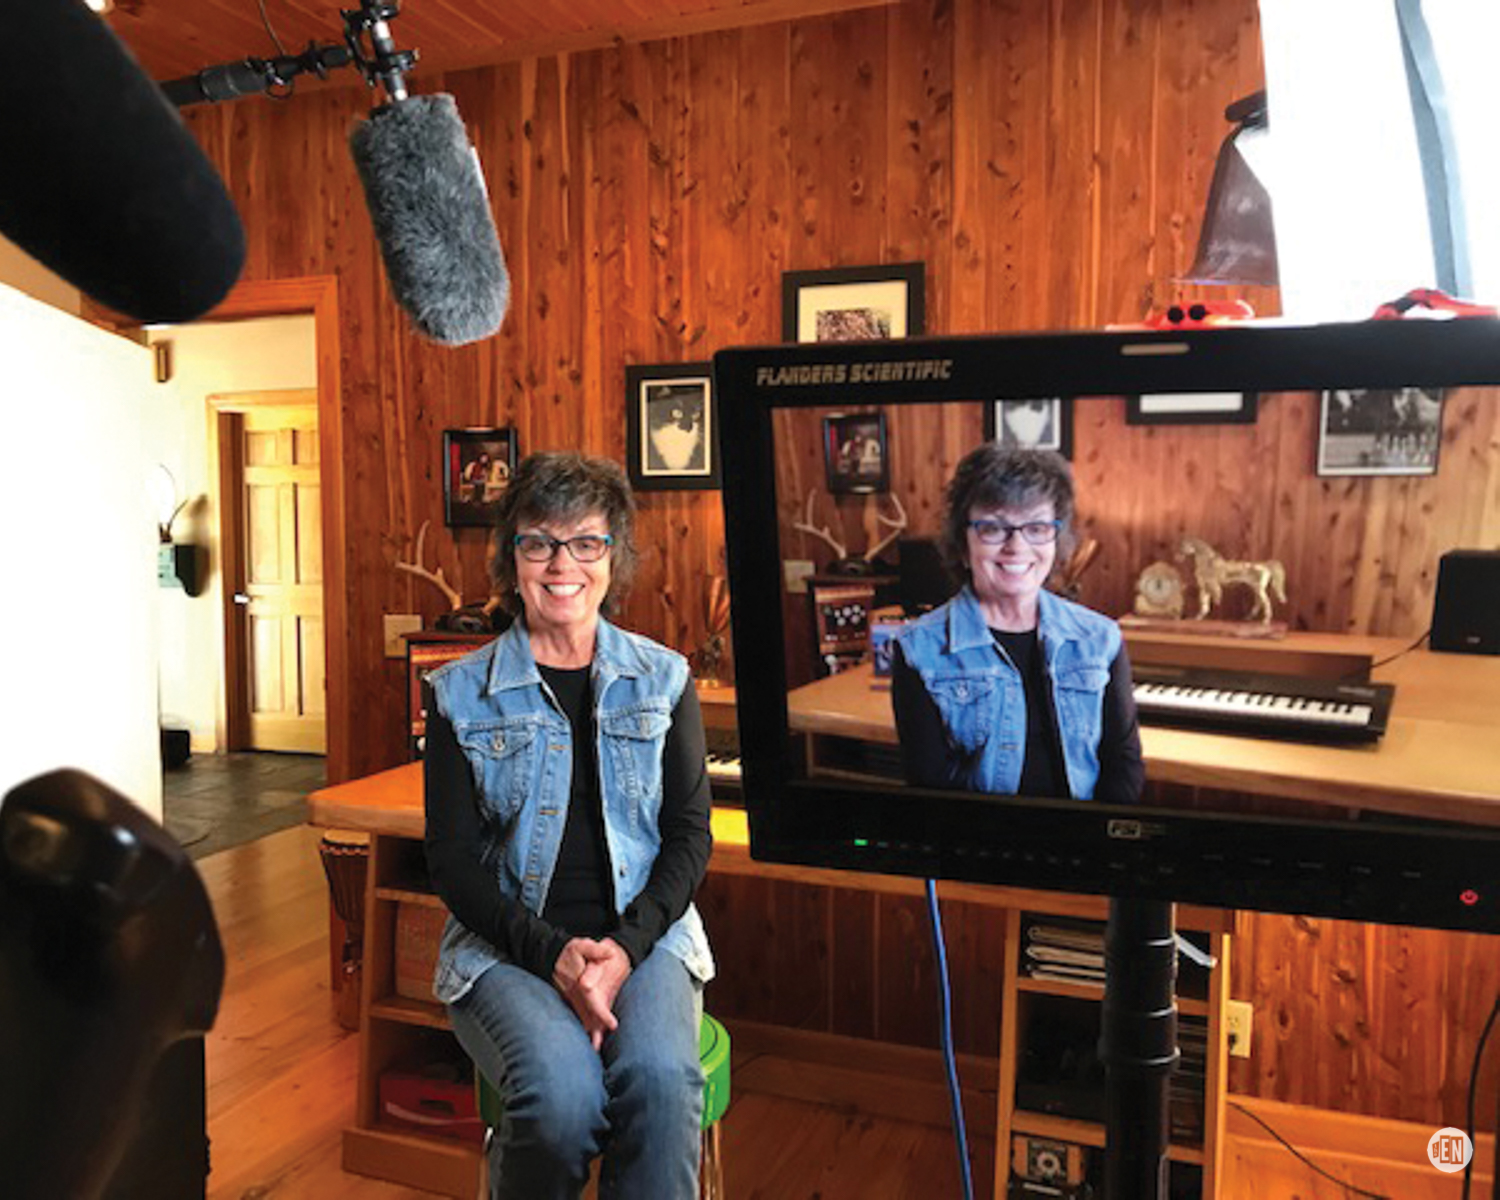 Grammy-nominated songwriter Mary Ann Kennedy whose frequent collaborator, Pam Rose, is also in the film.